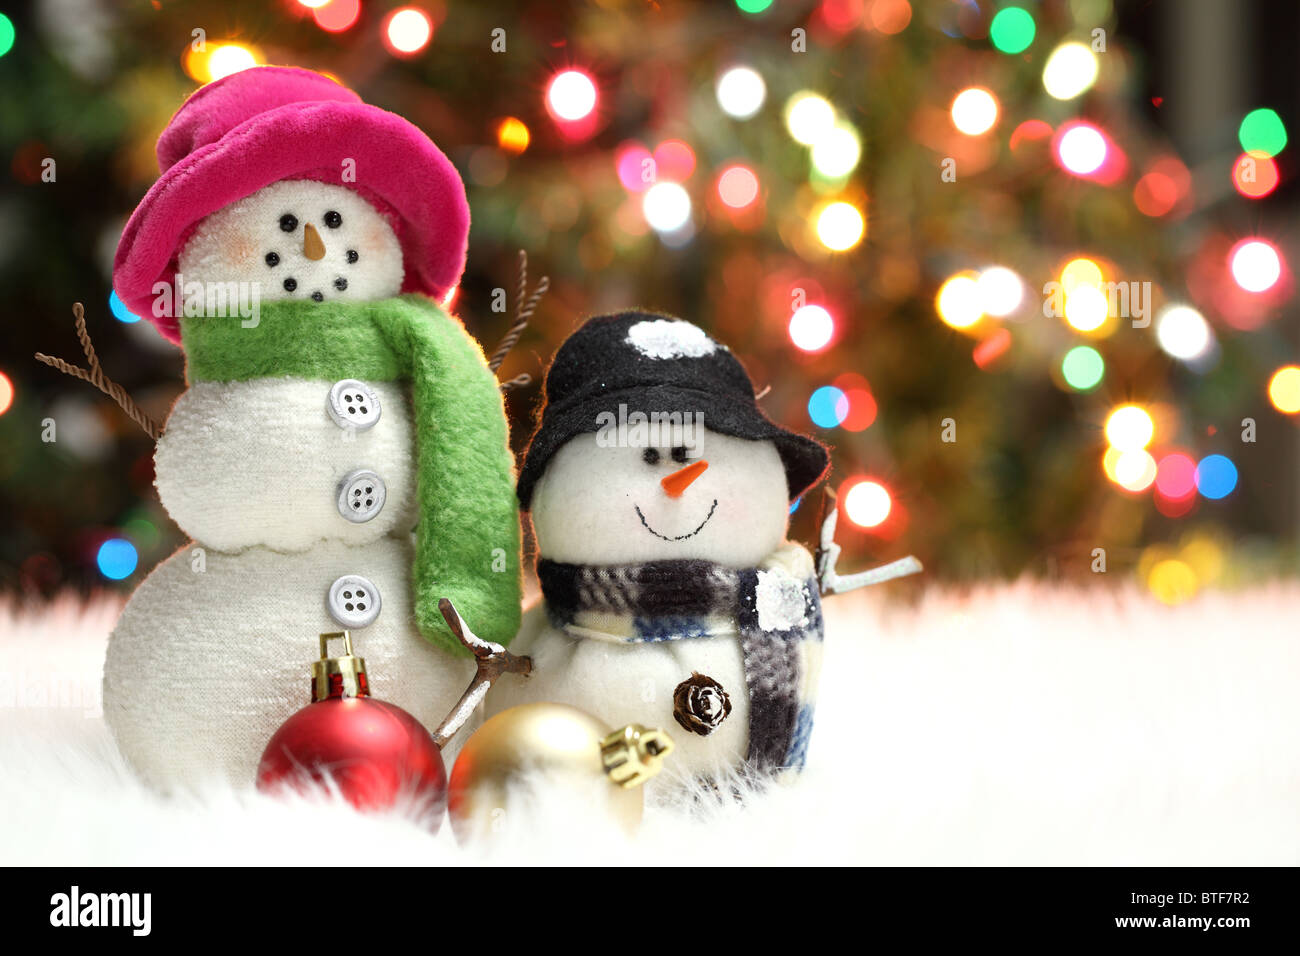 Festive snowman with Christmas light background - Stock Image